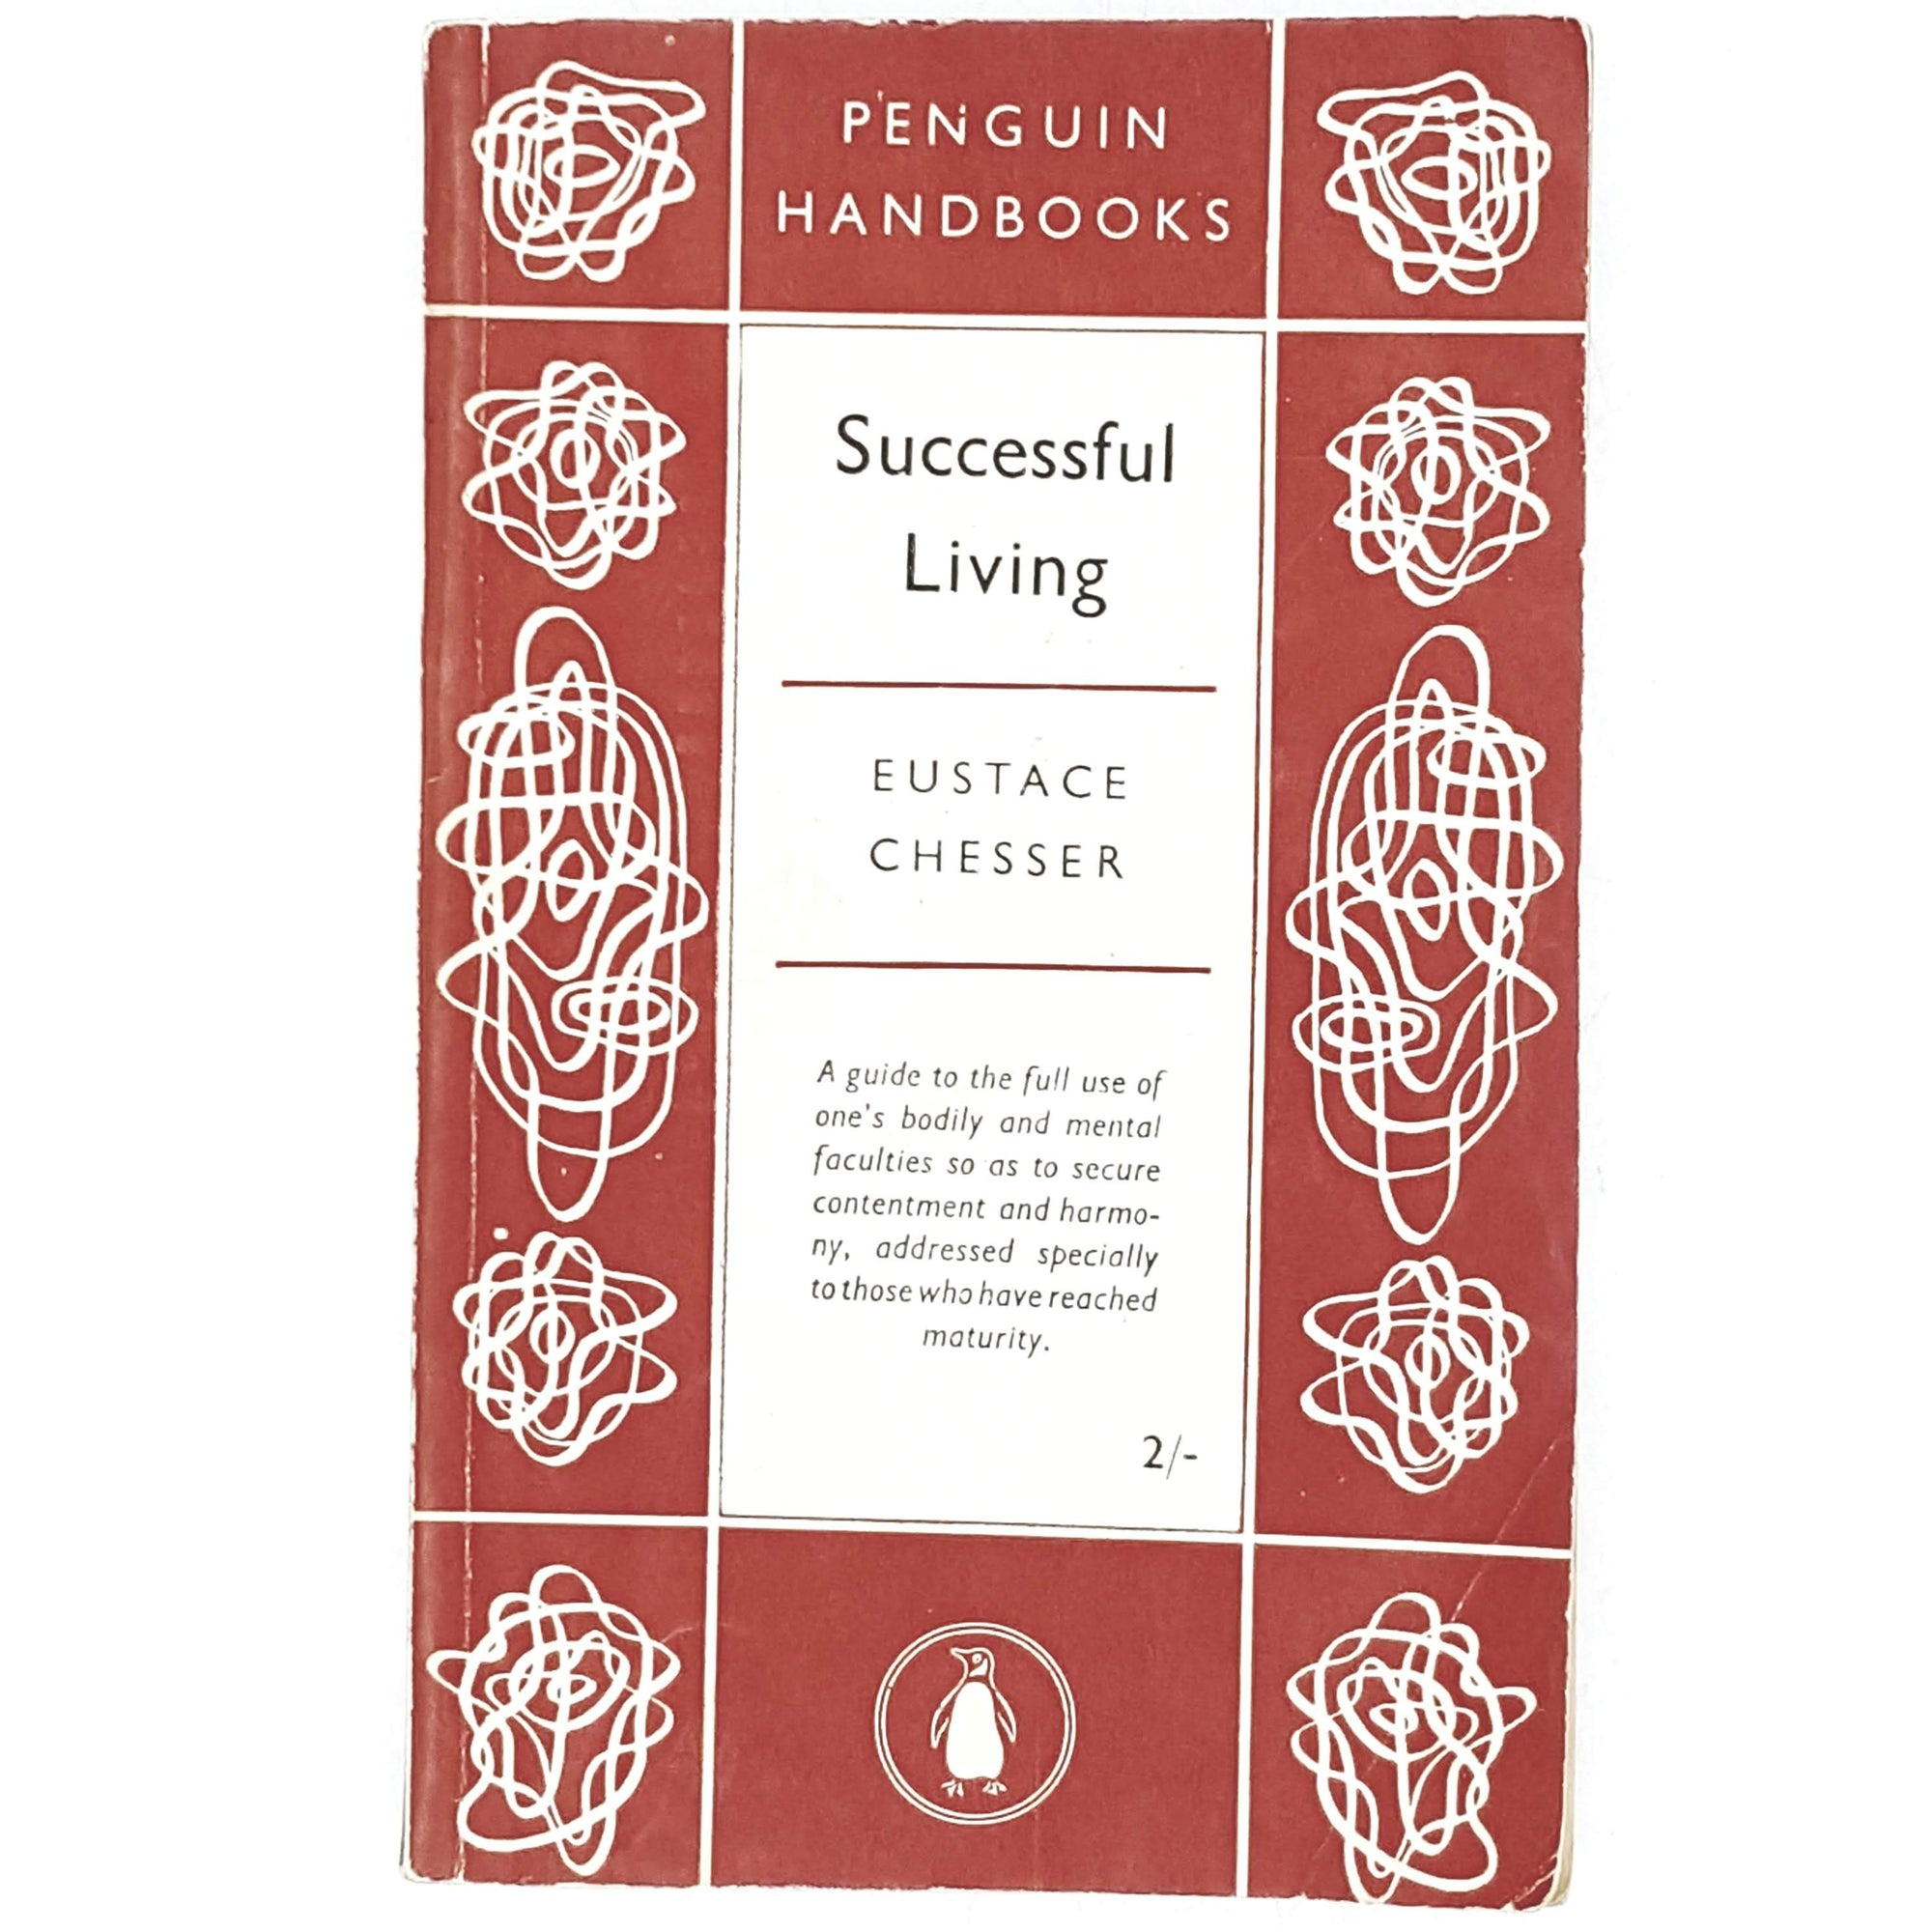 First Edition Successful Living by Eustace Chesser 1952